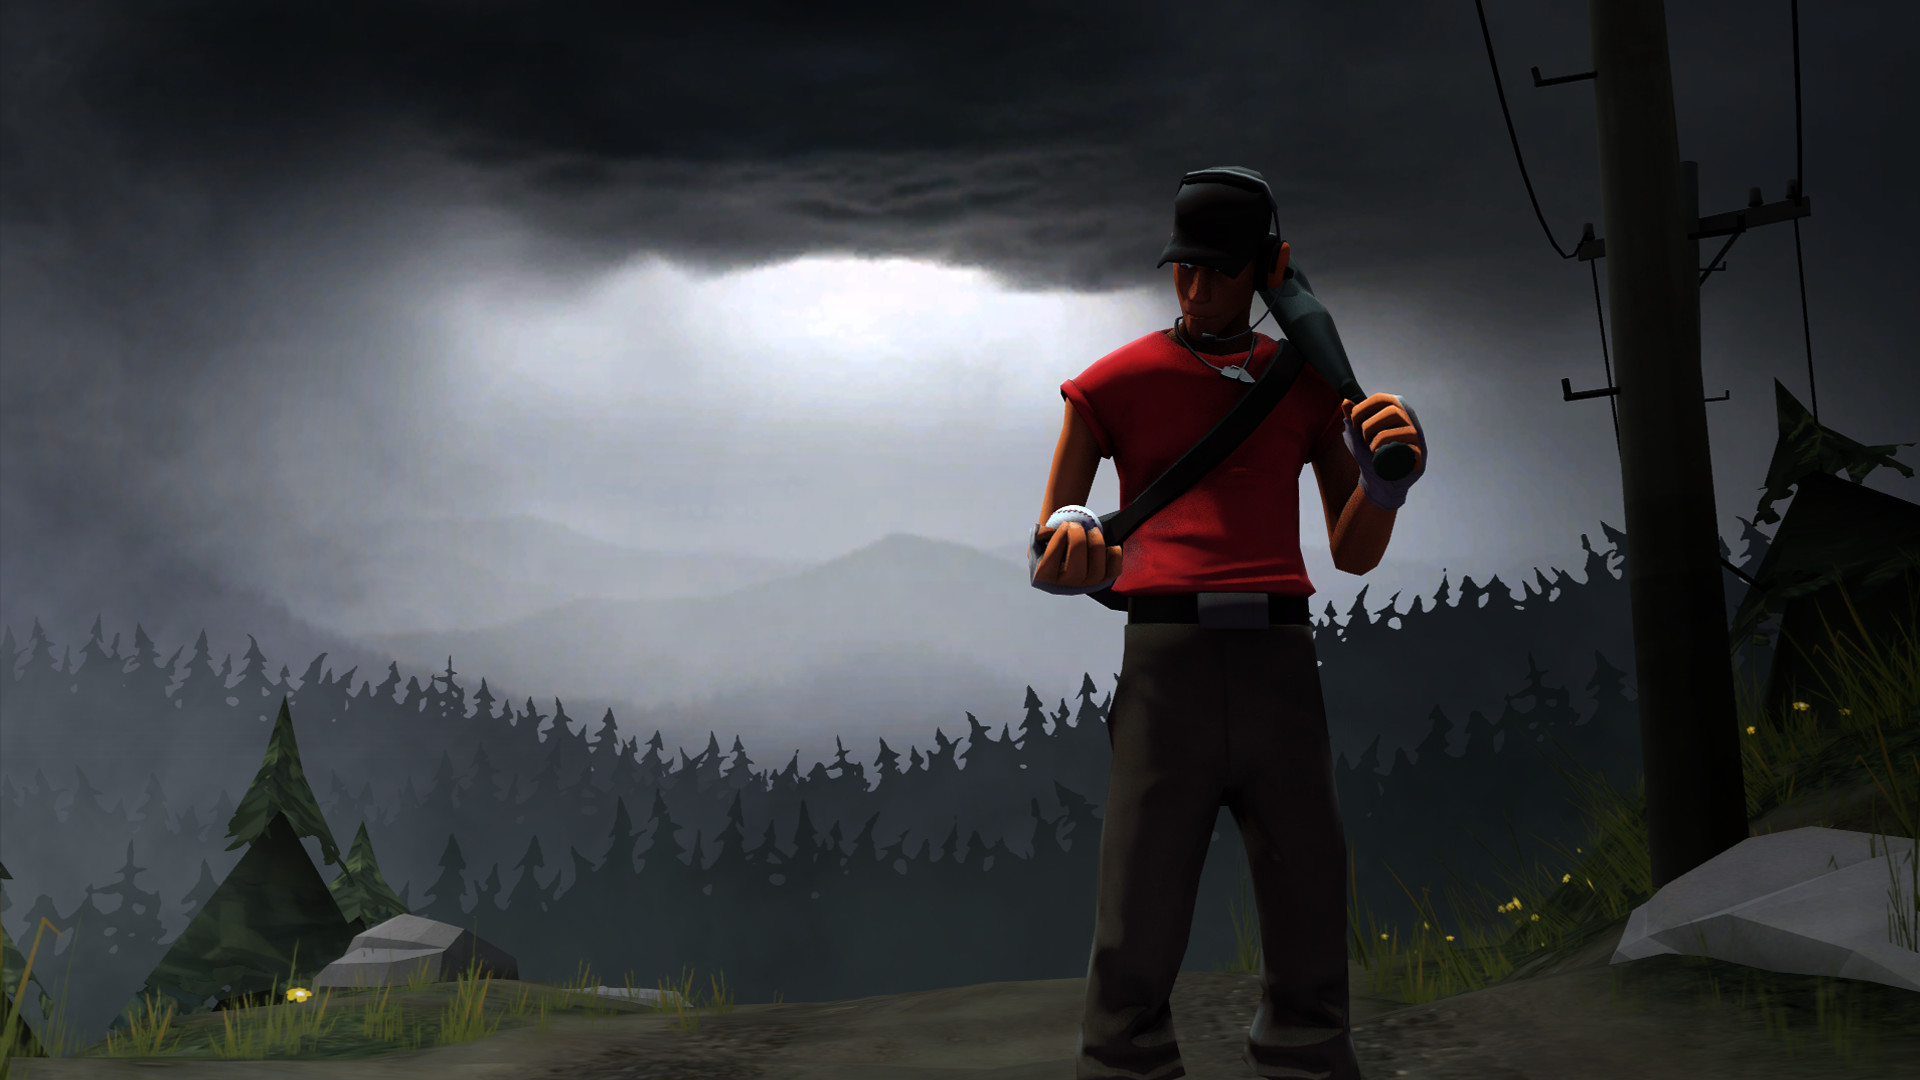 1920x1080 TF2 - Scout Wallpaper by QuickKritz TF2 - Scout Wallpaper by QuickKritz